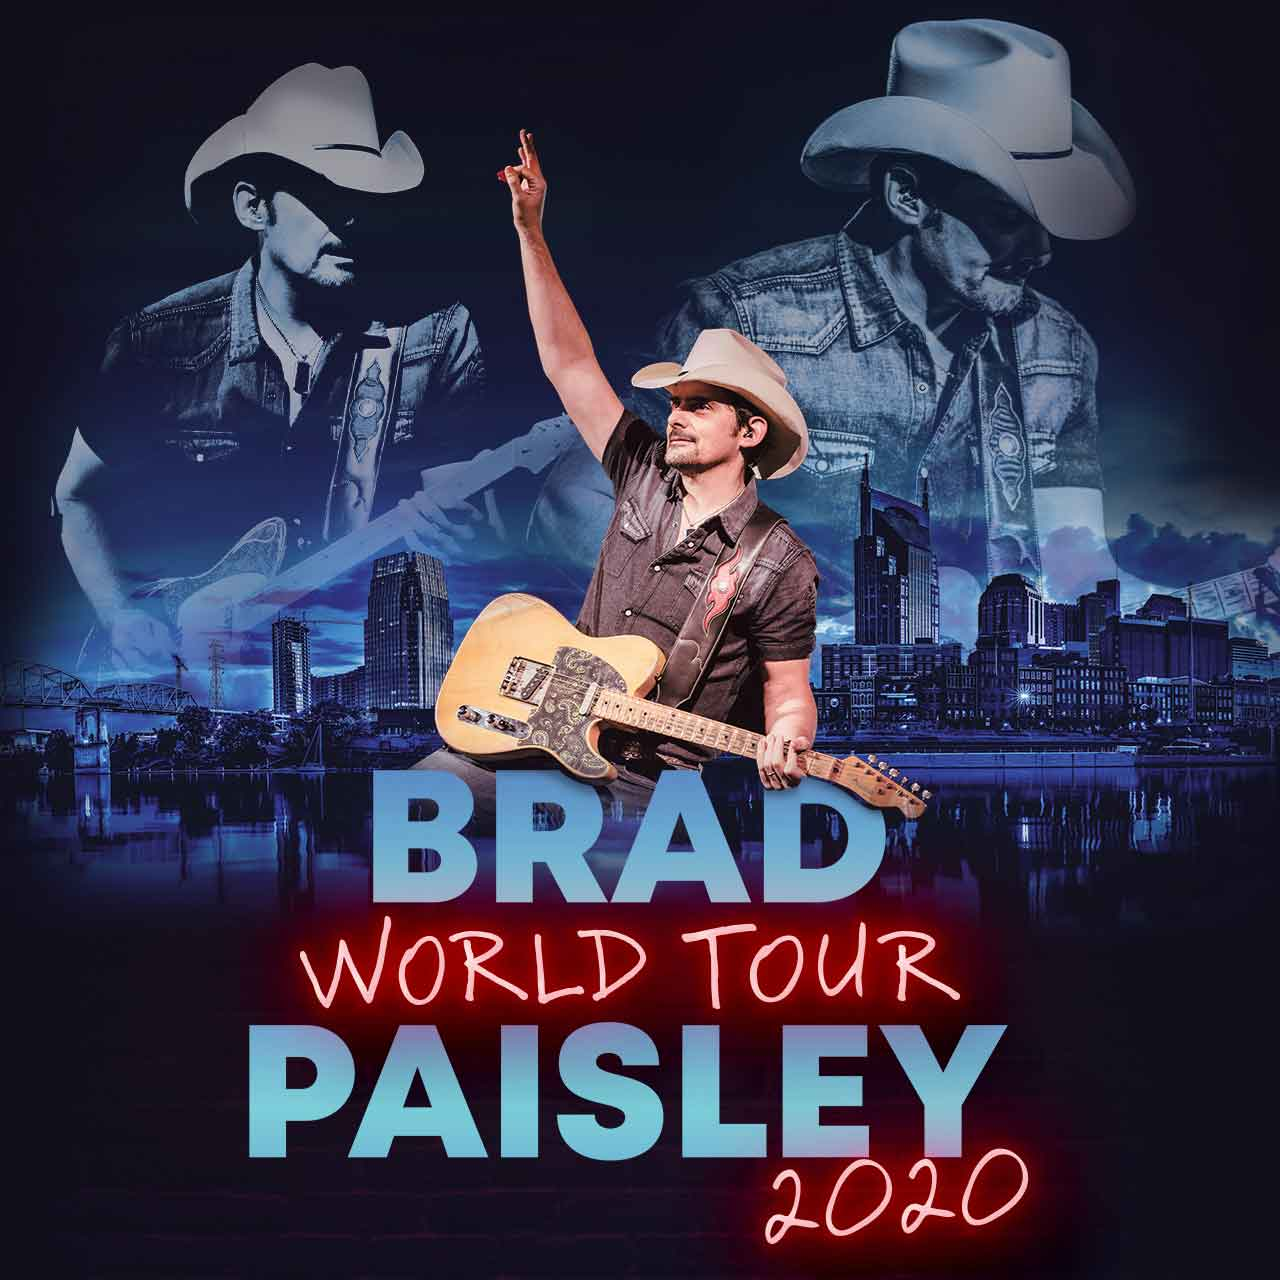 Summer 2020 World Tour